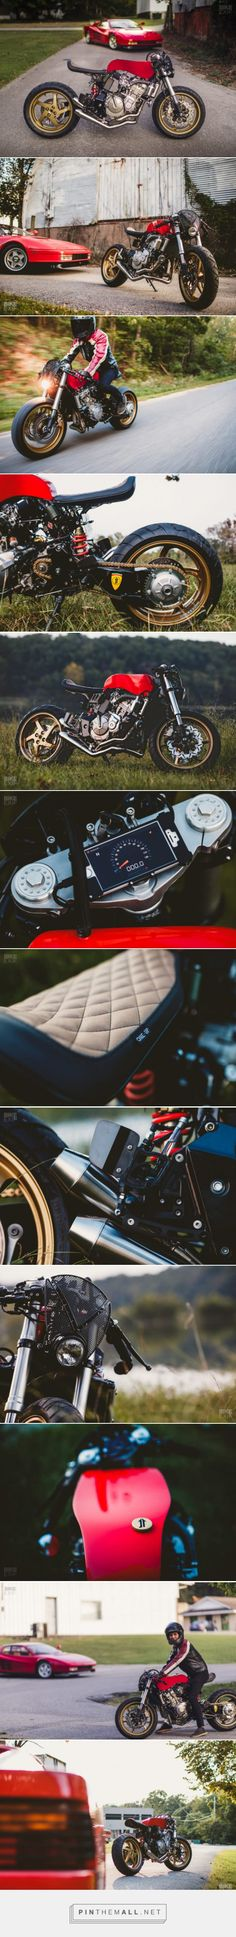 Rosso Corsa: A Honda Cafe Racer Inspired by a Ferrari | Bike EXIF - created on 2017-10-21 11:19:45